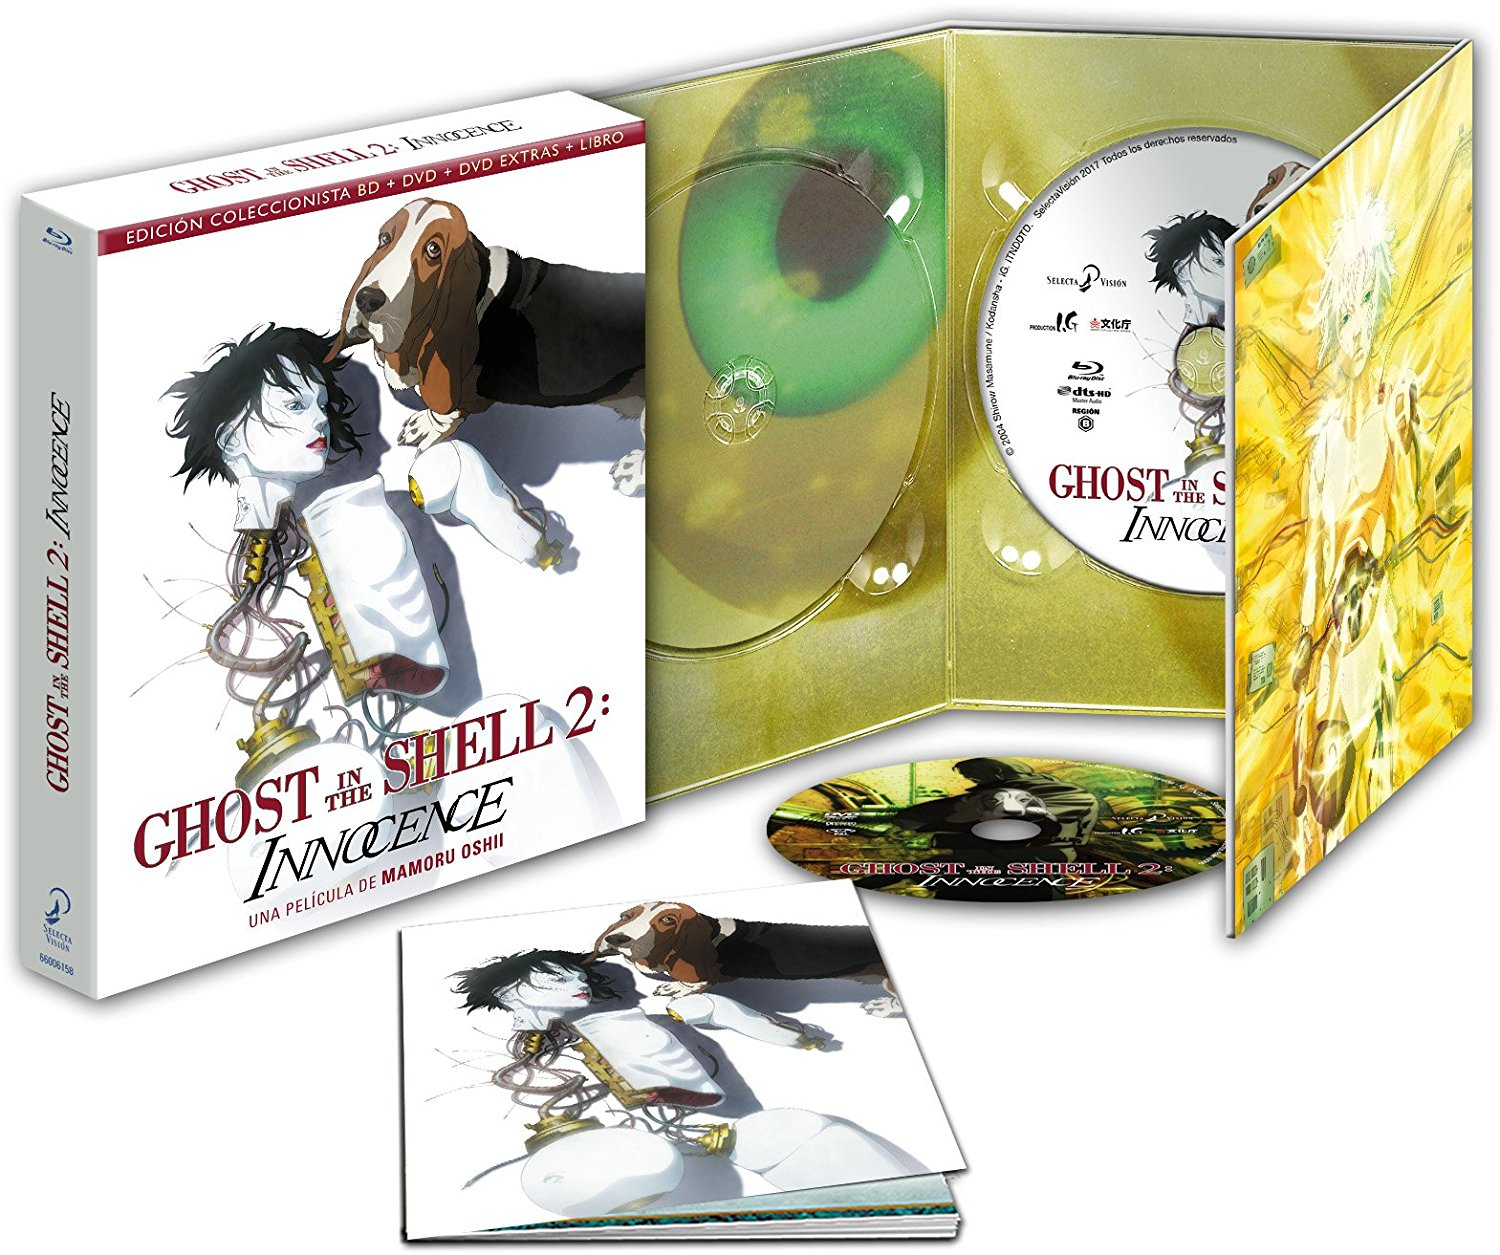 Ghost in the Shell 2 Innocence Edición Coleccionistas BD